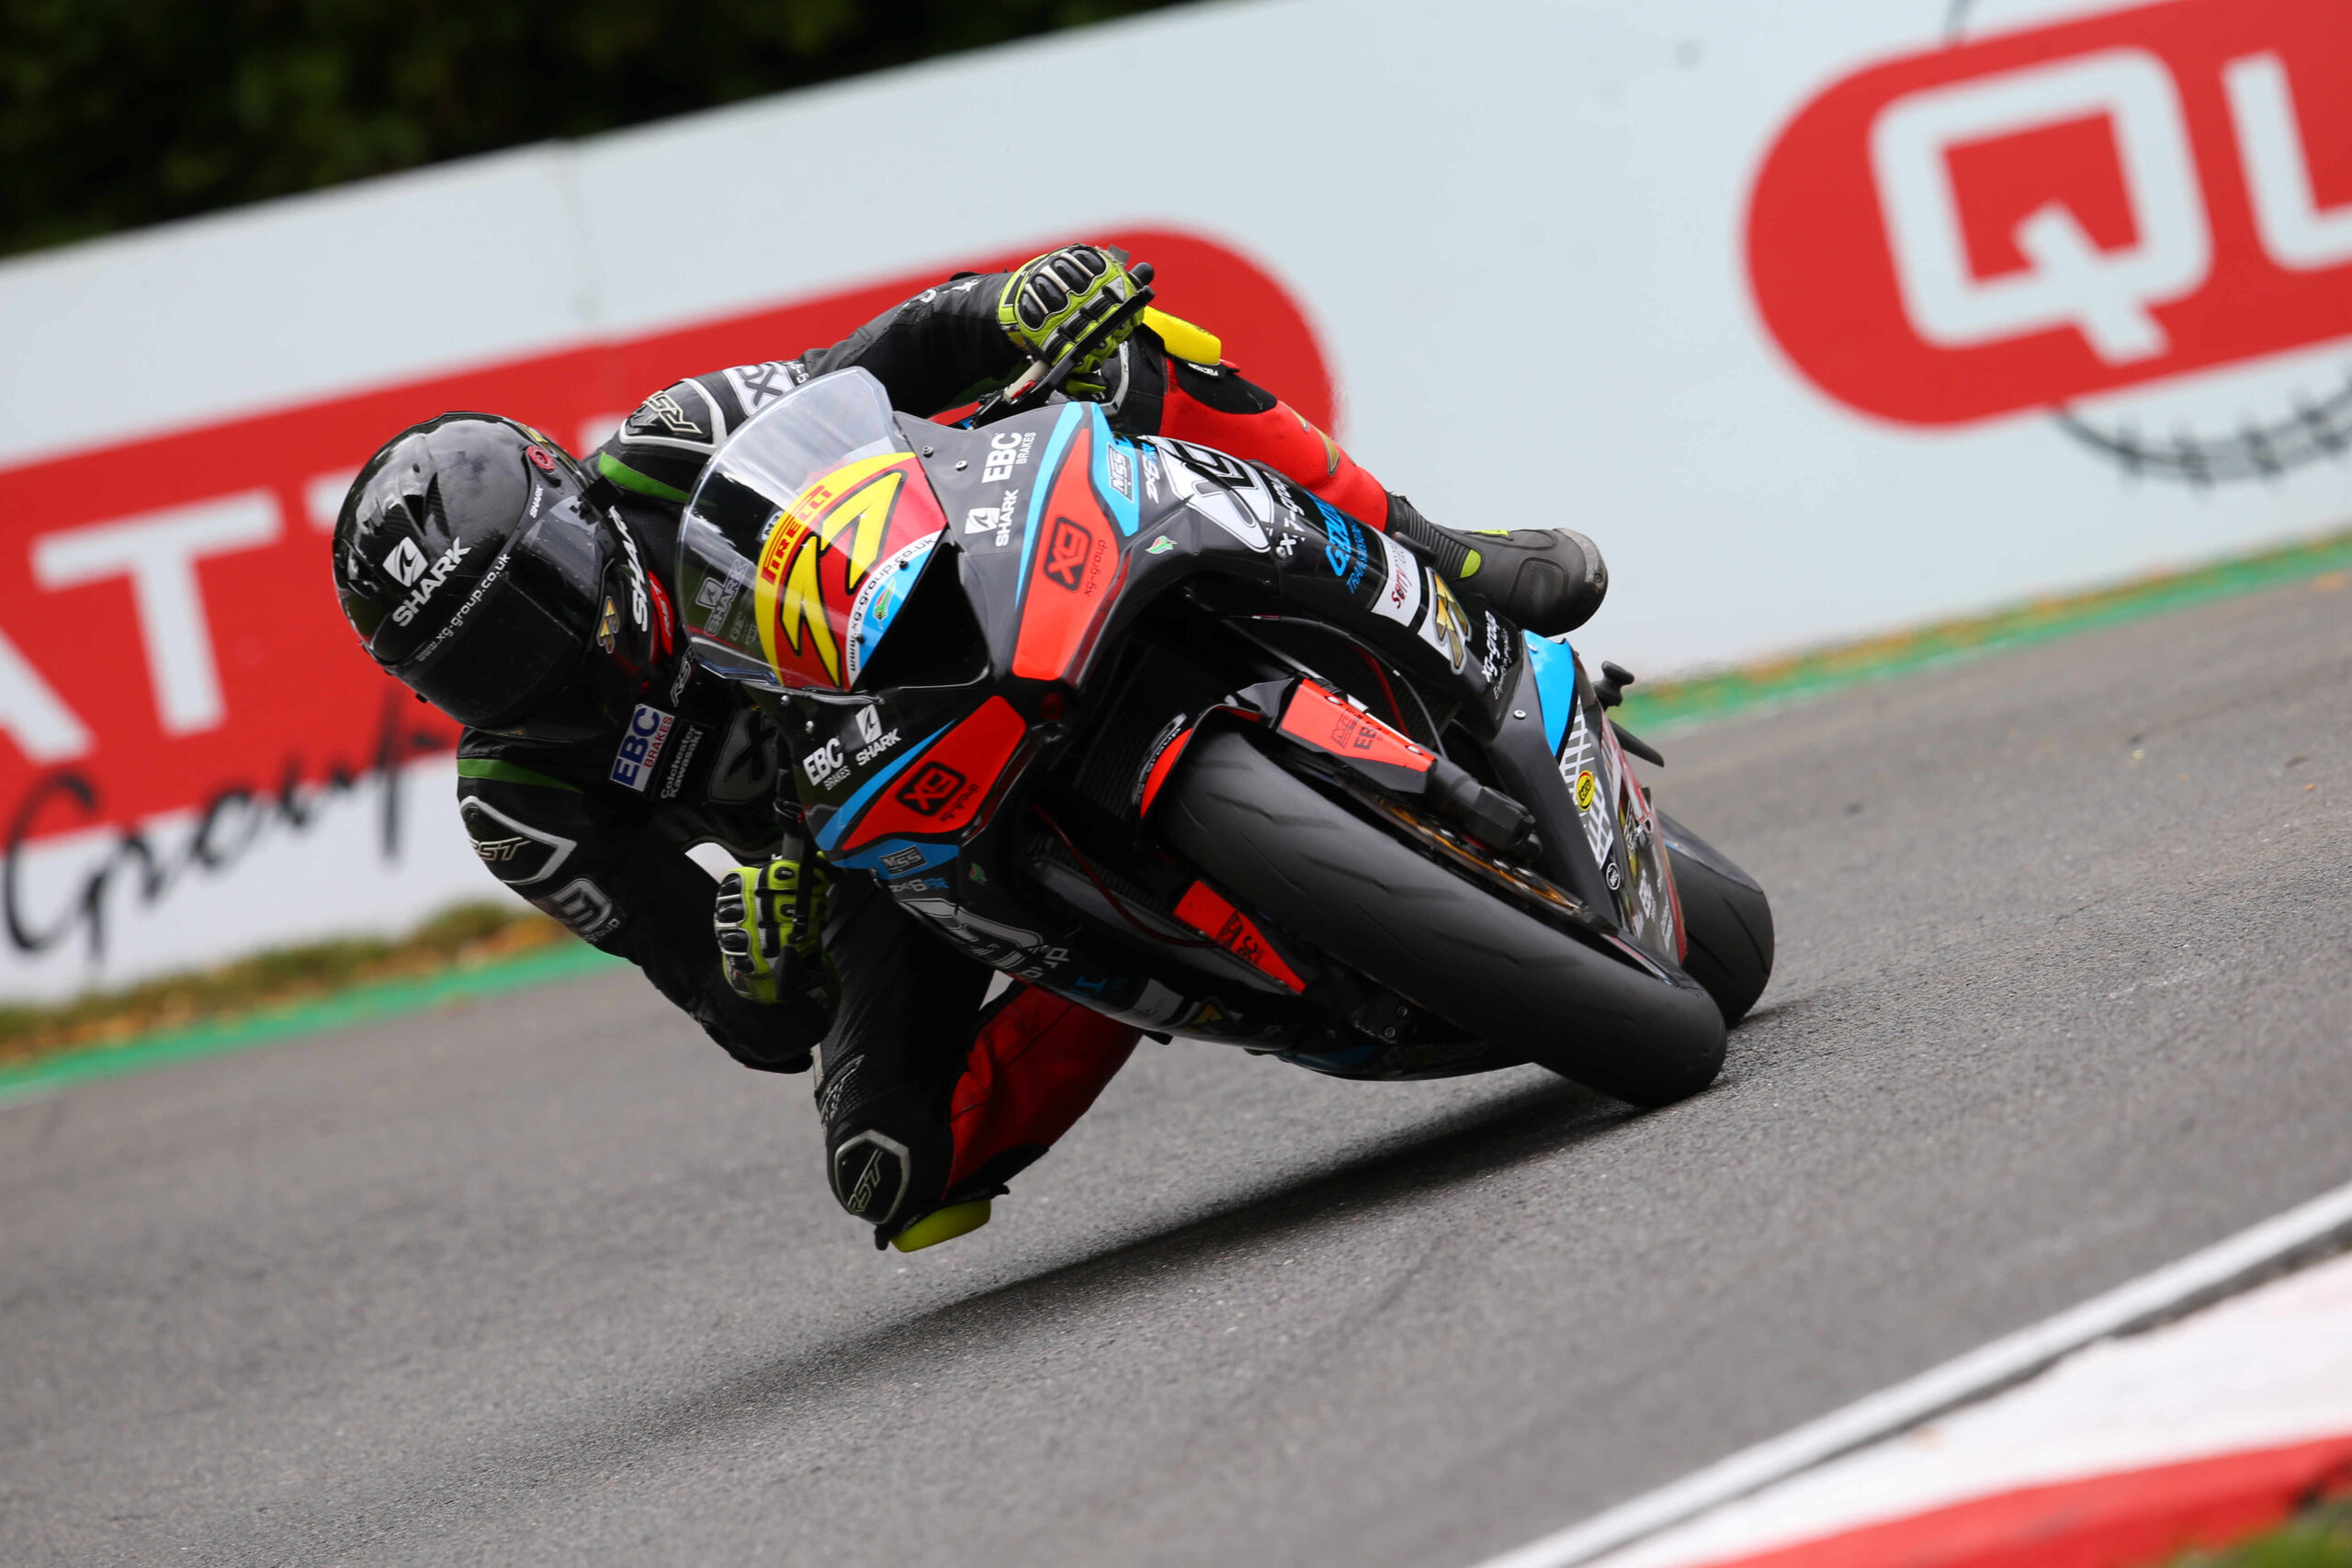 KADE VERWEY HAPPY WITH TOP 10 FINISH AT CADWELL PARK